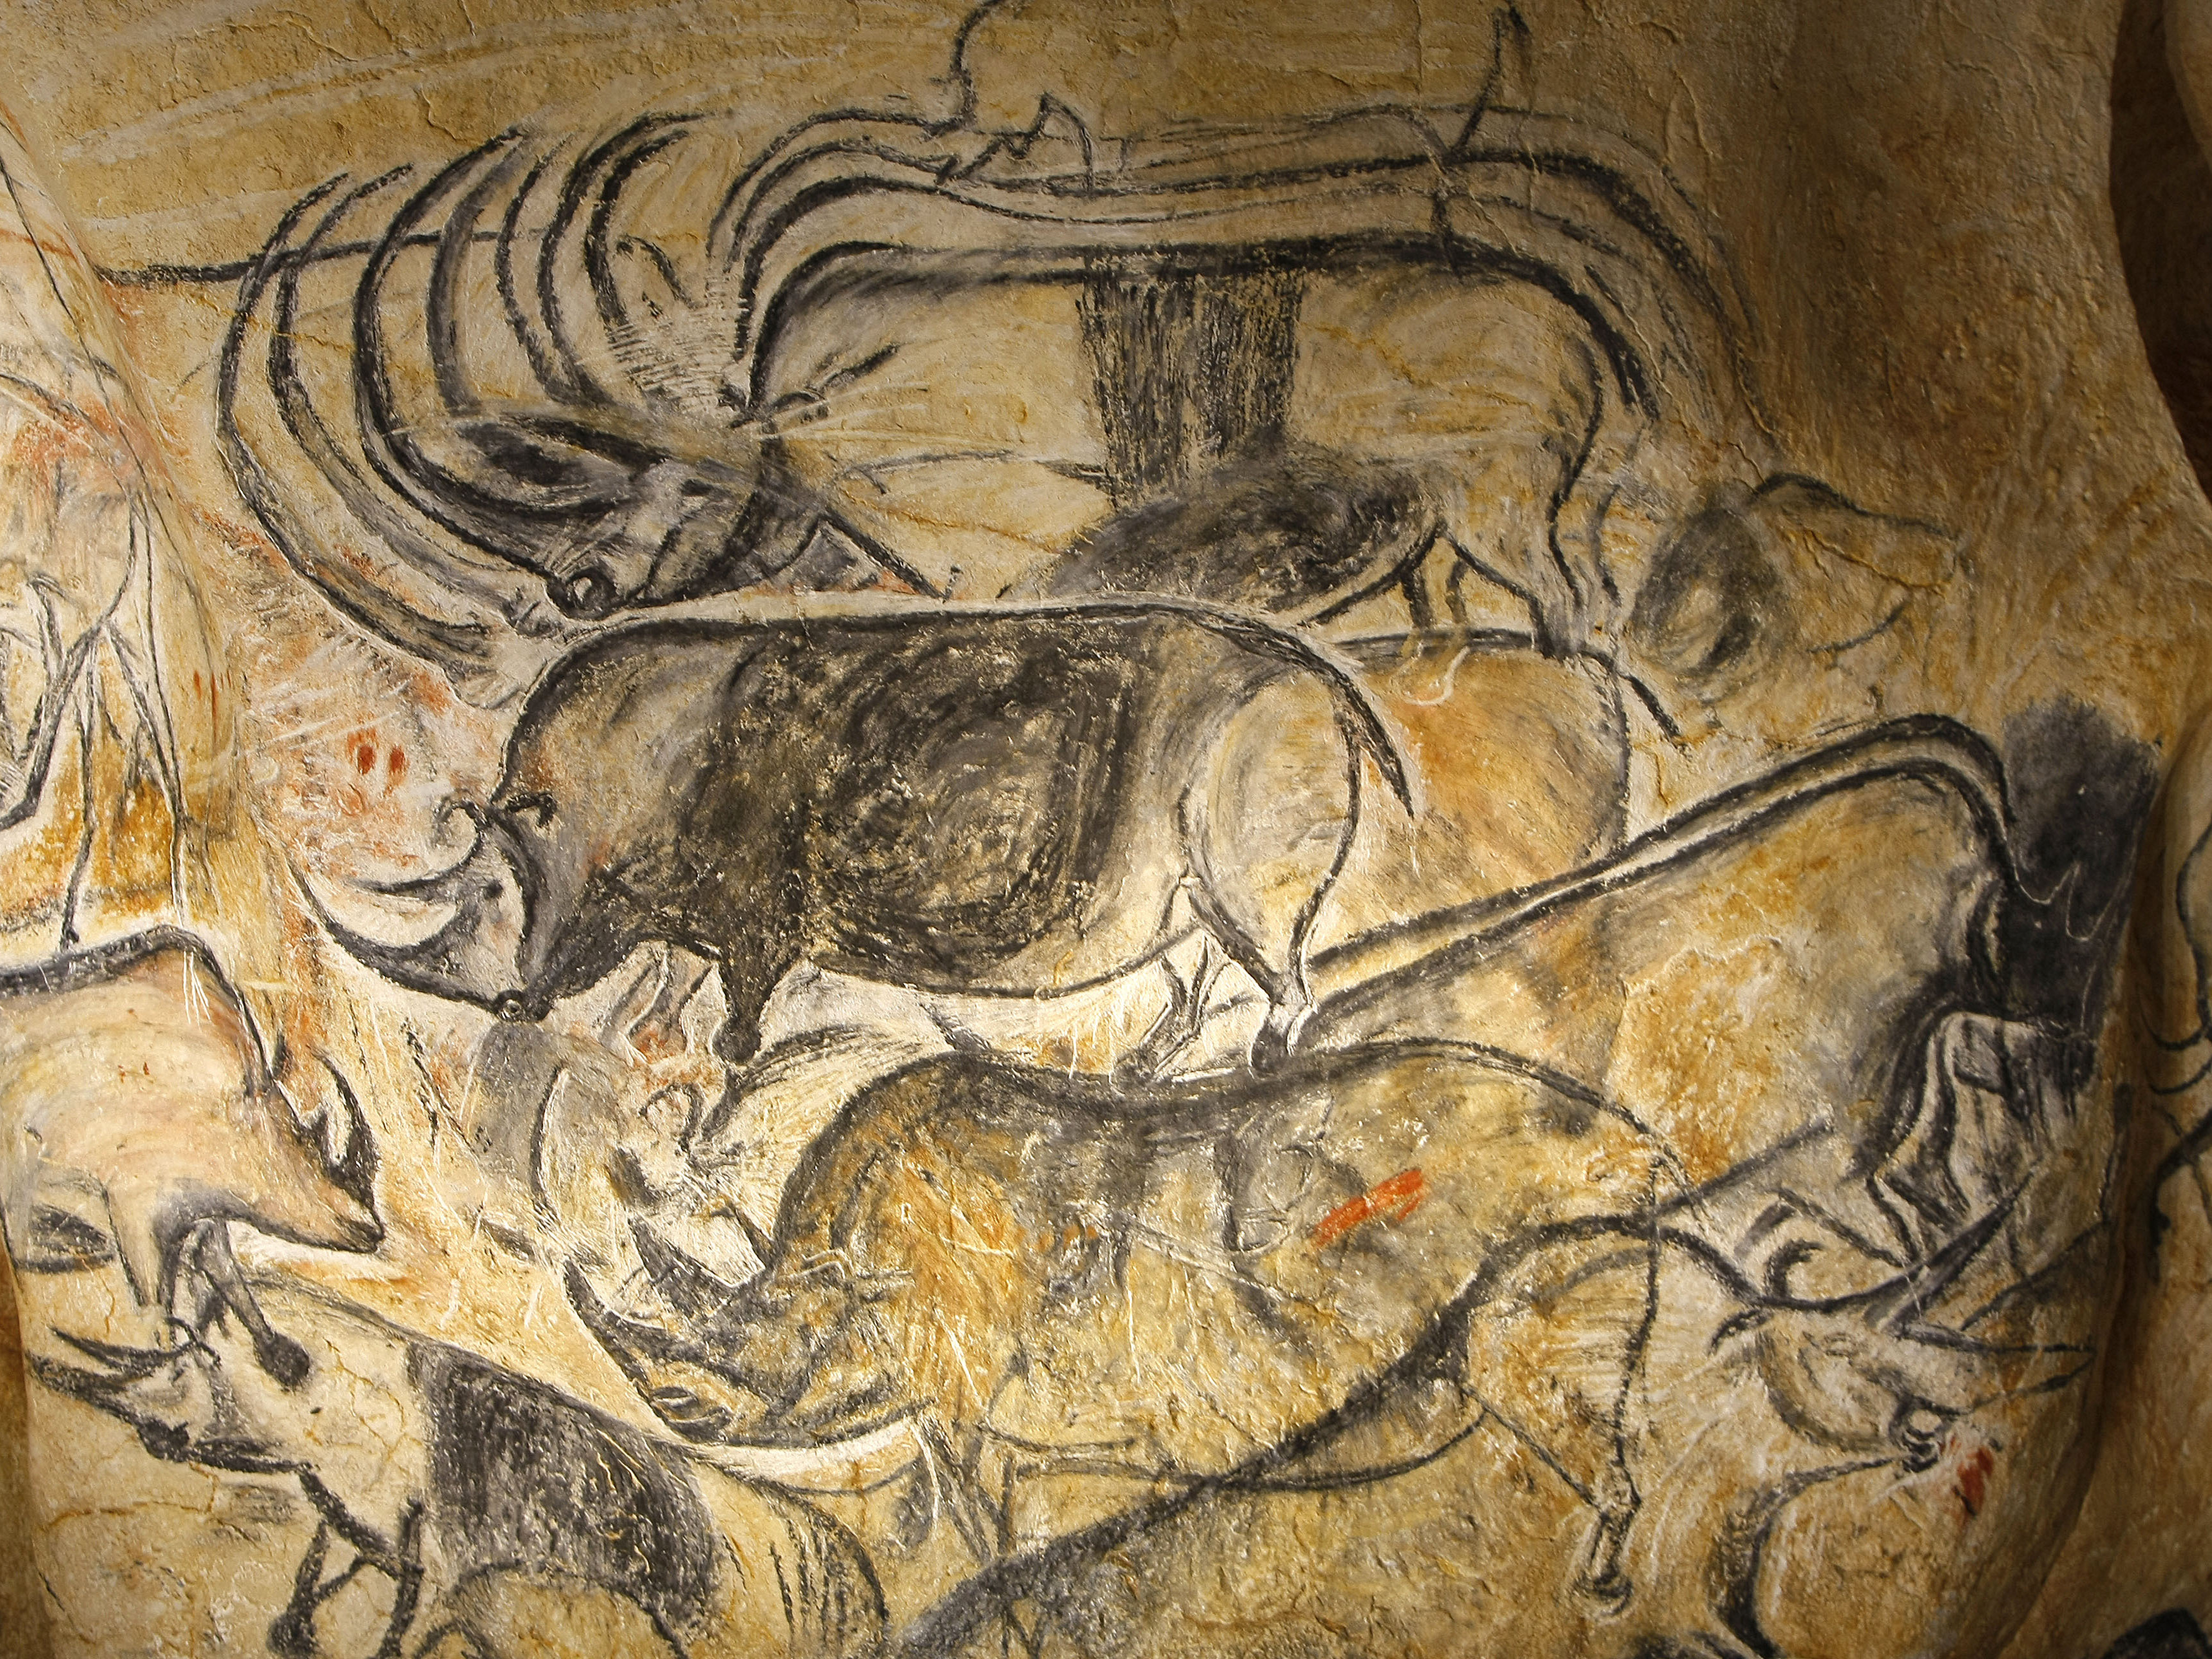 We May Never Shed Light On Ancient Artists' Motives